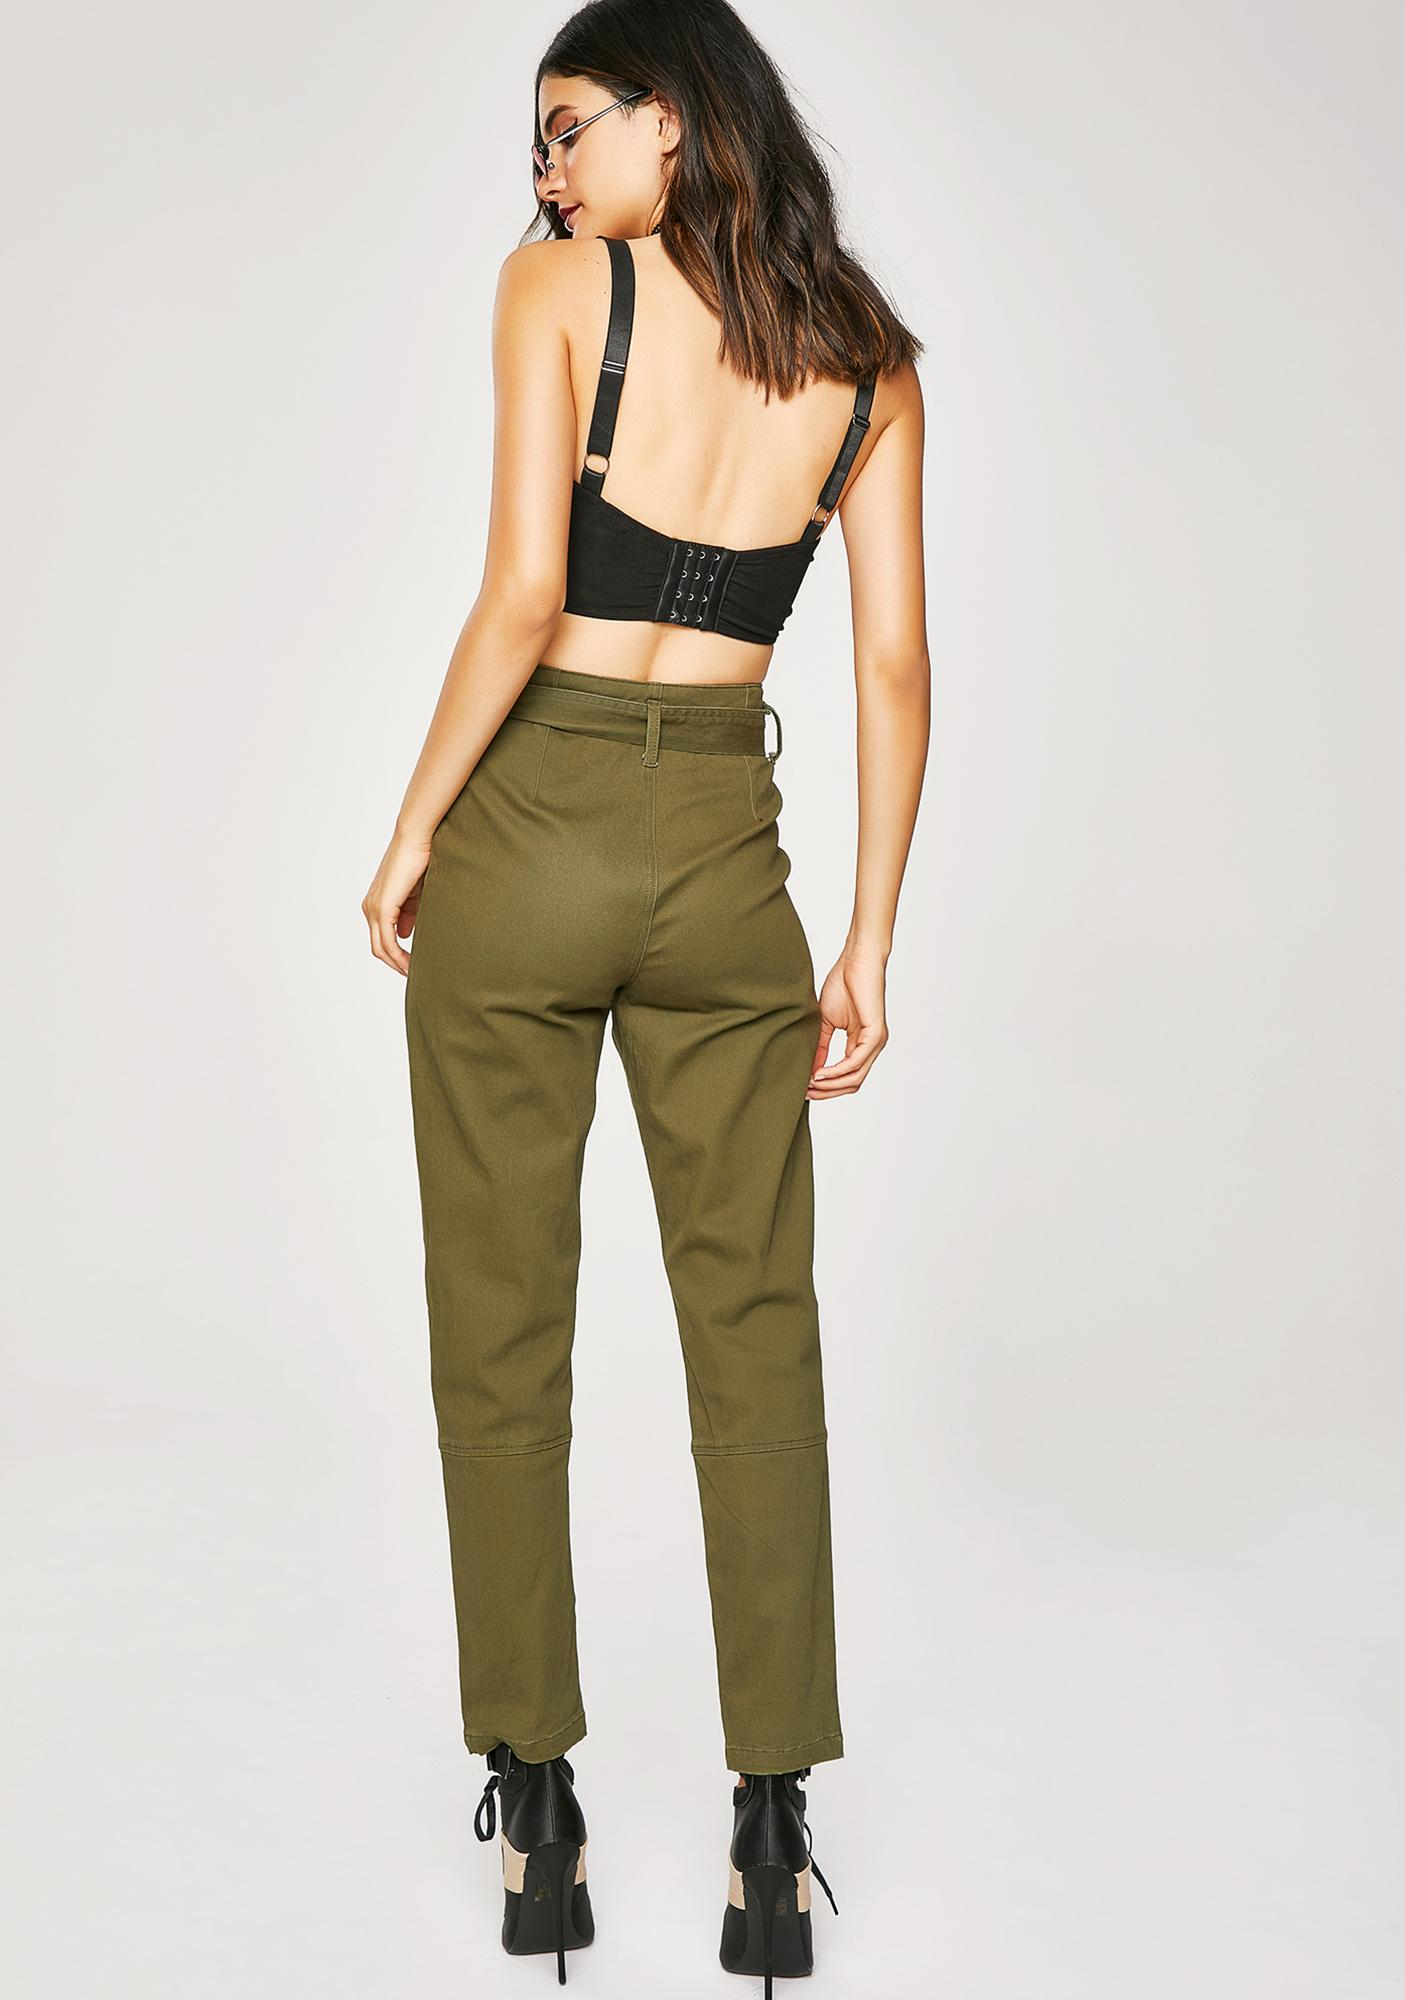 Smart Cookie Belted Pants